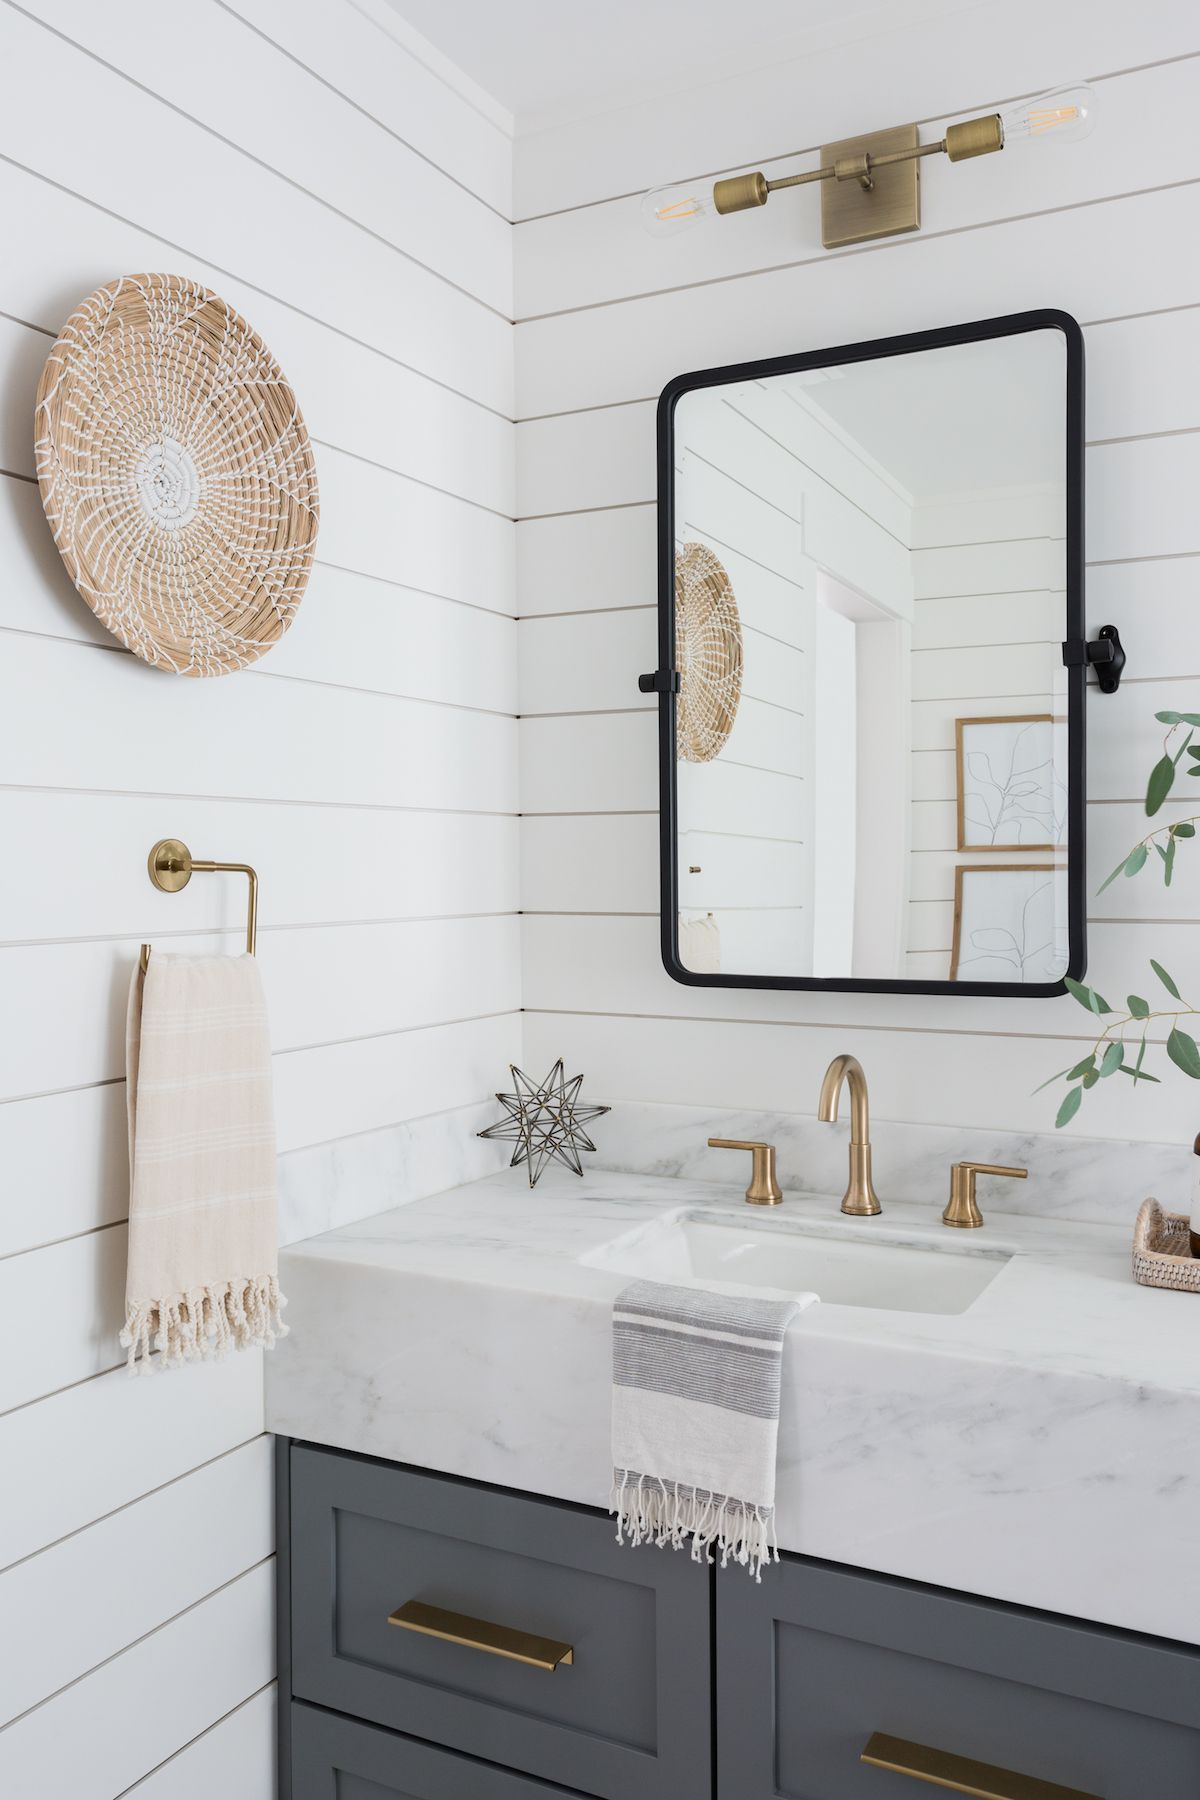 Light & Airy Bathroom with Shiplap, Patterned Tile & Mixed Metals#airy #bathroom #light #metals #mixed #patterned #shiplap #tile